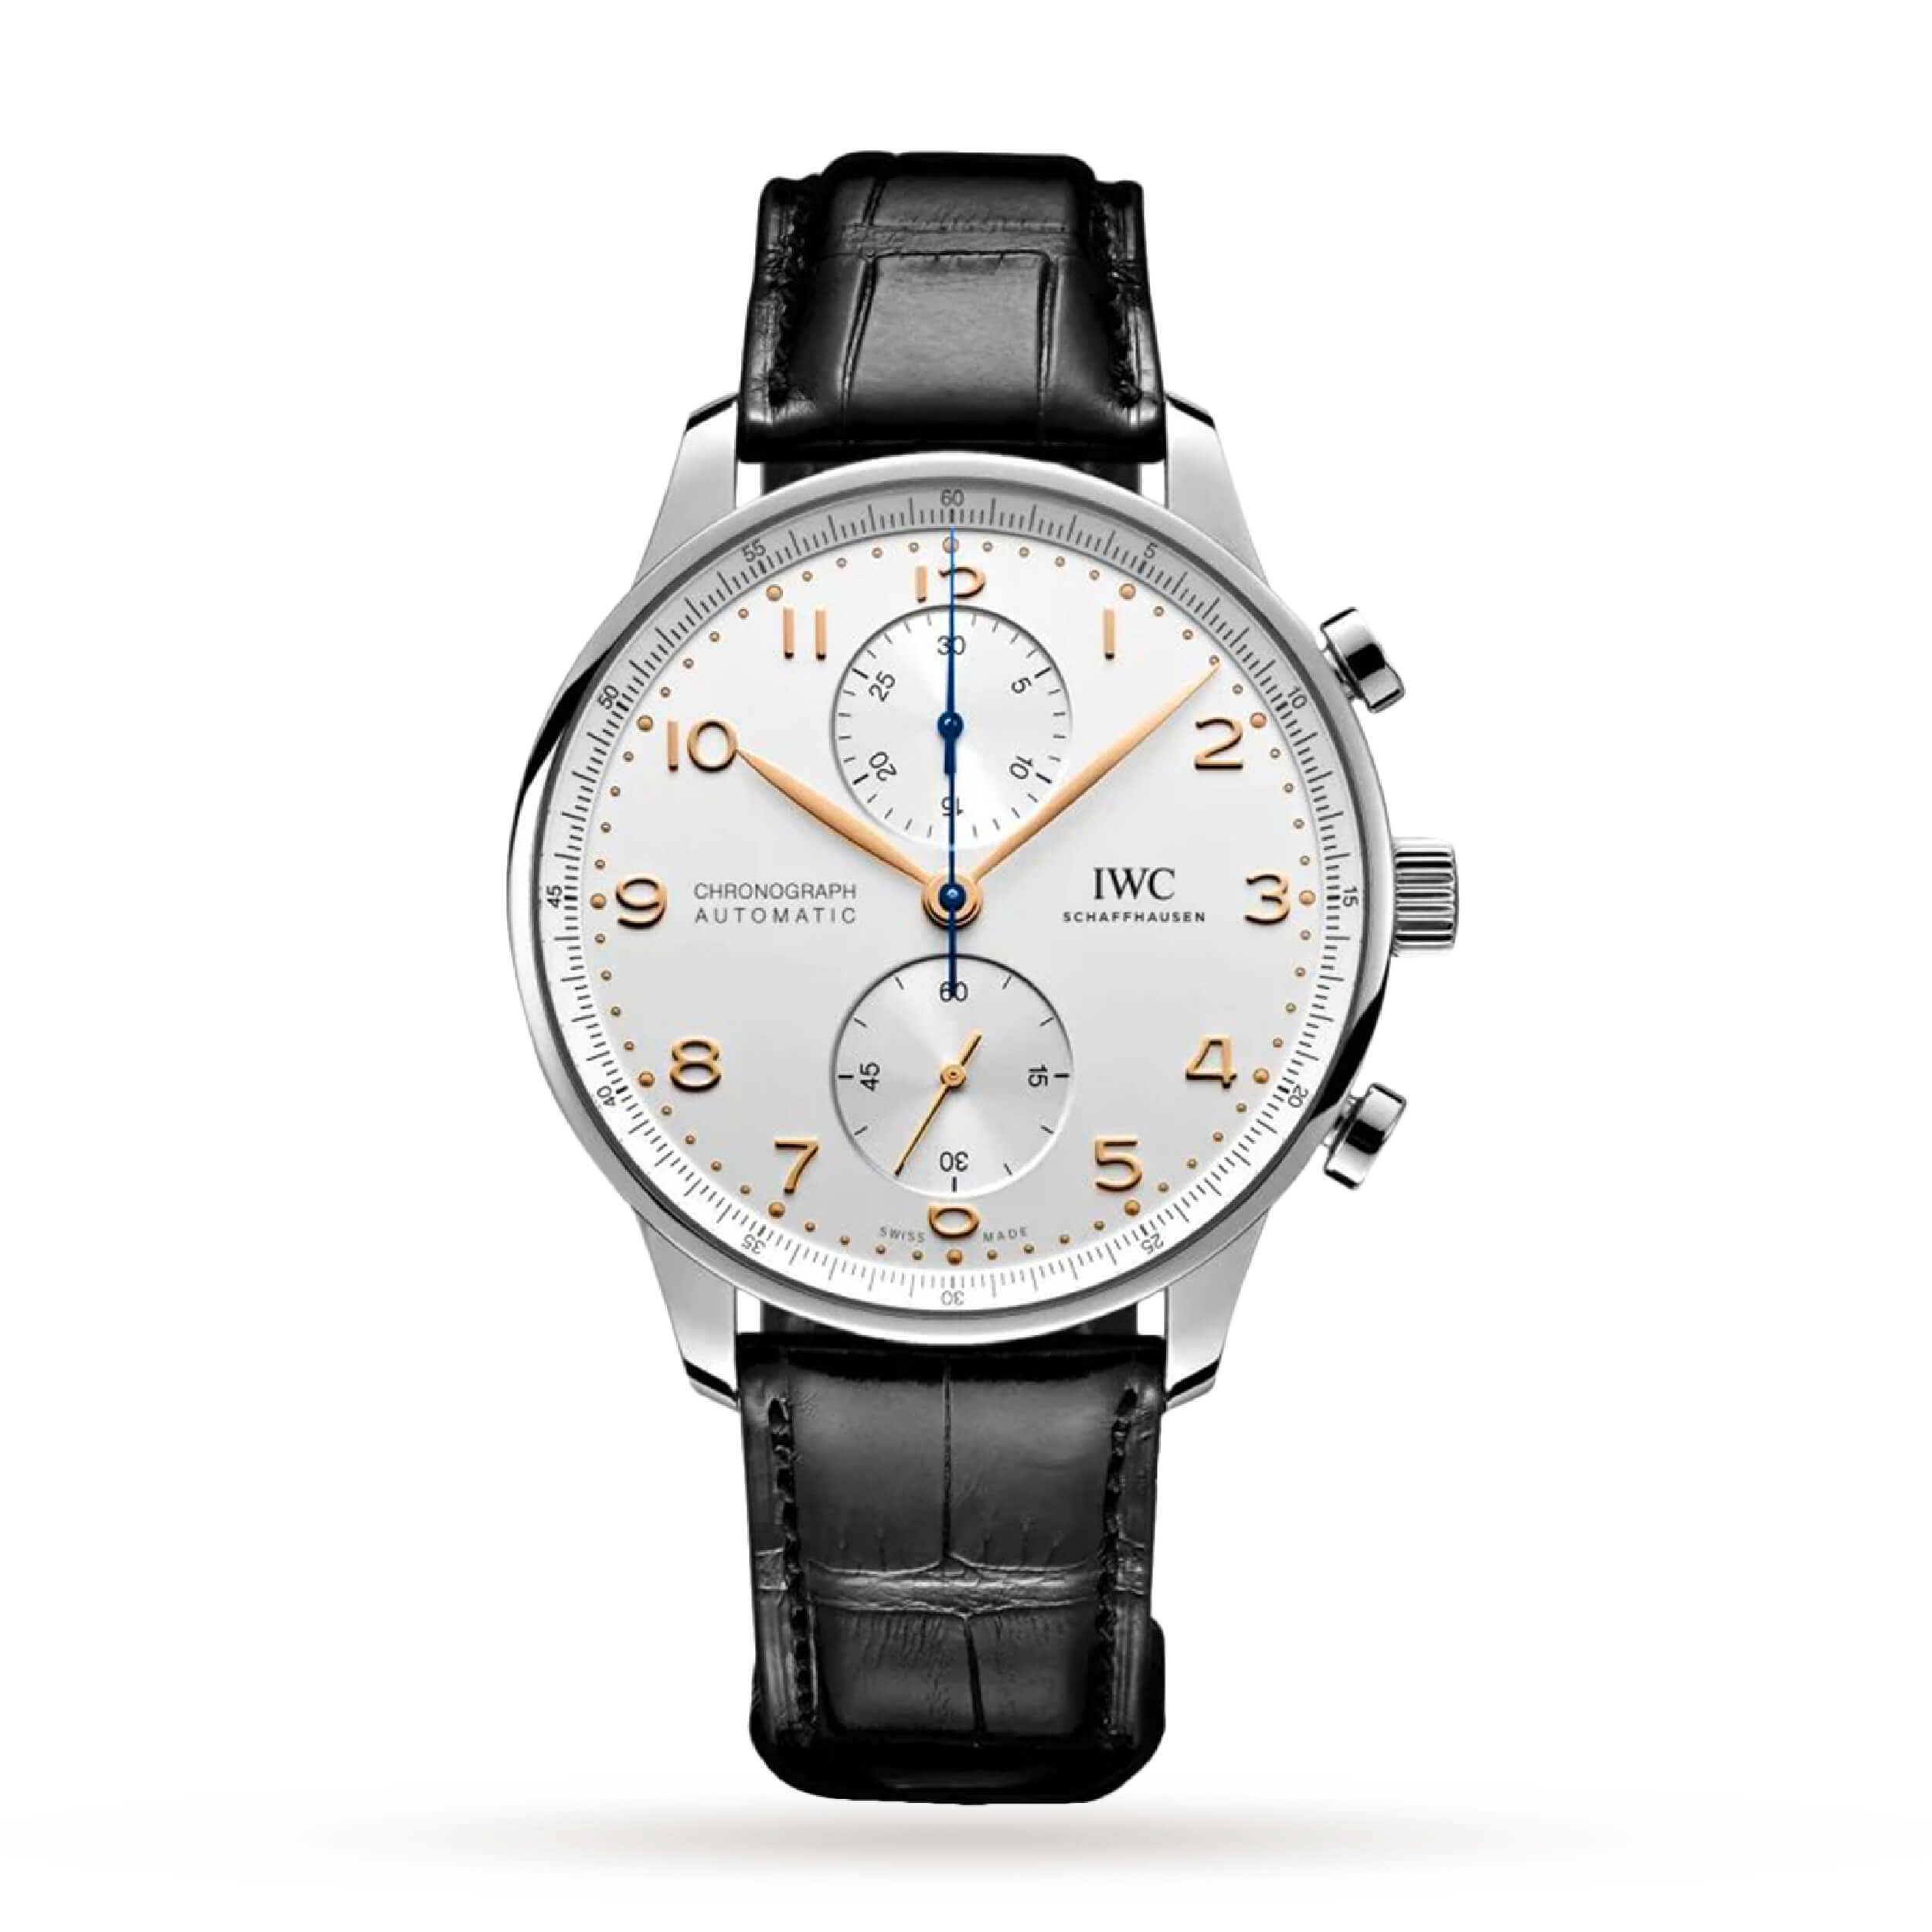 IWC Portugieser Chronograph | Best watches under £10000